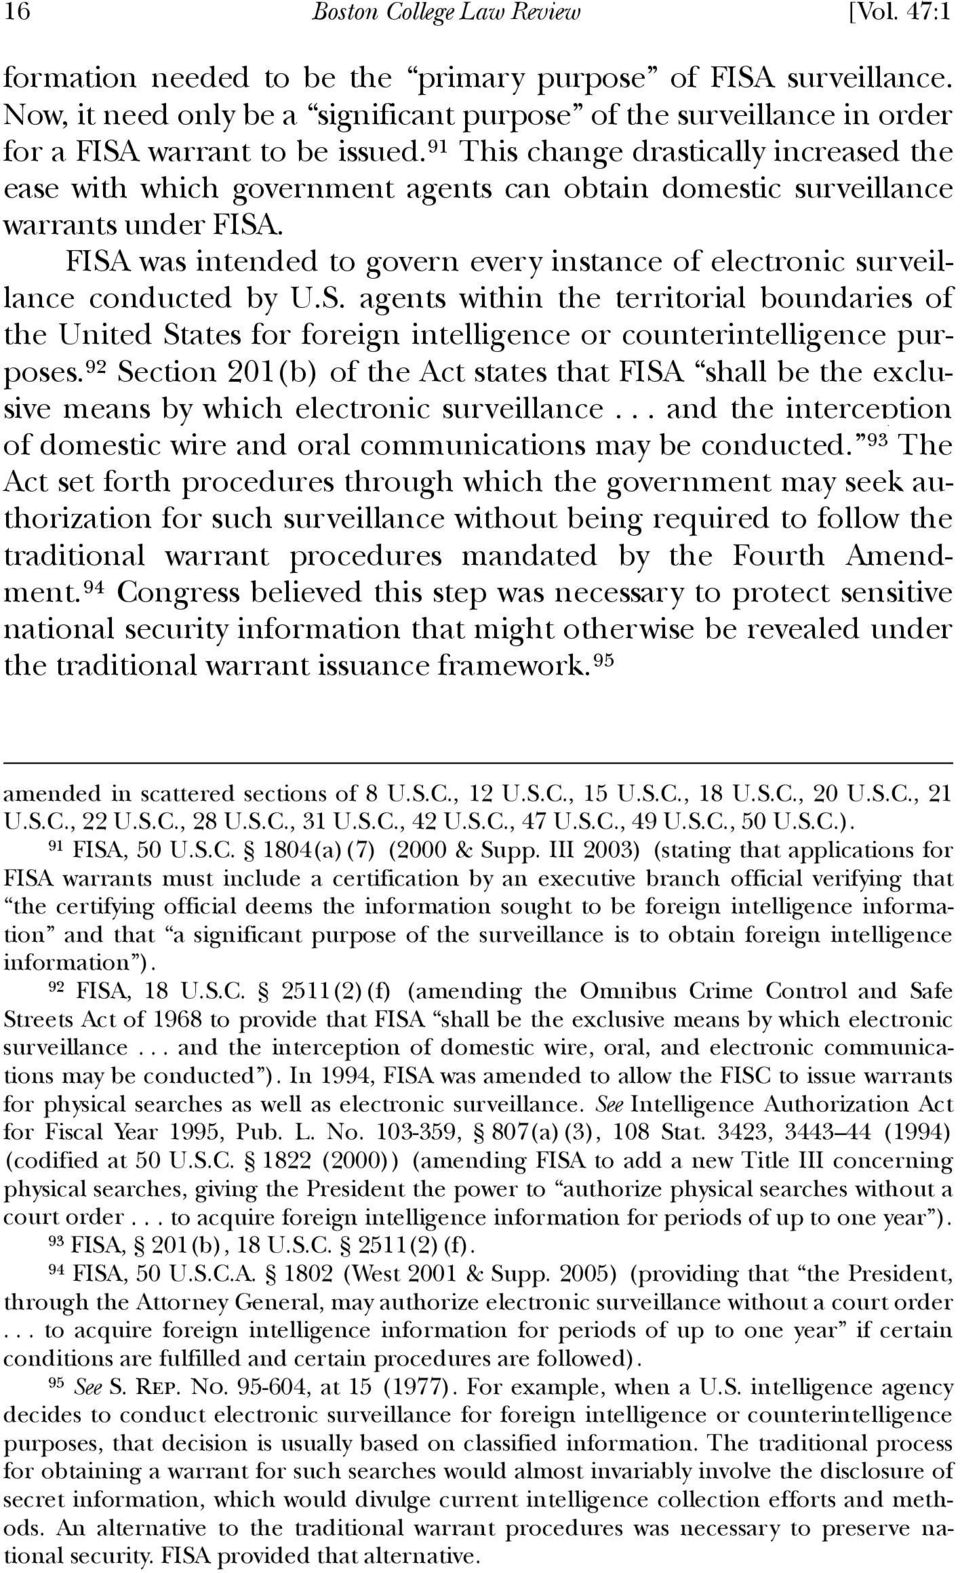 91 This change drastically increased the ease with which government agents can obtain domestic surveillance warrants under FISA.